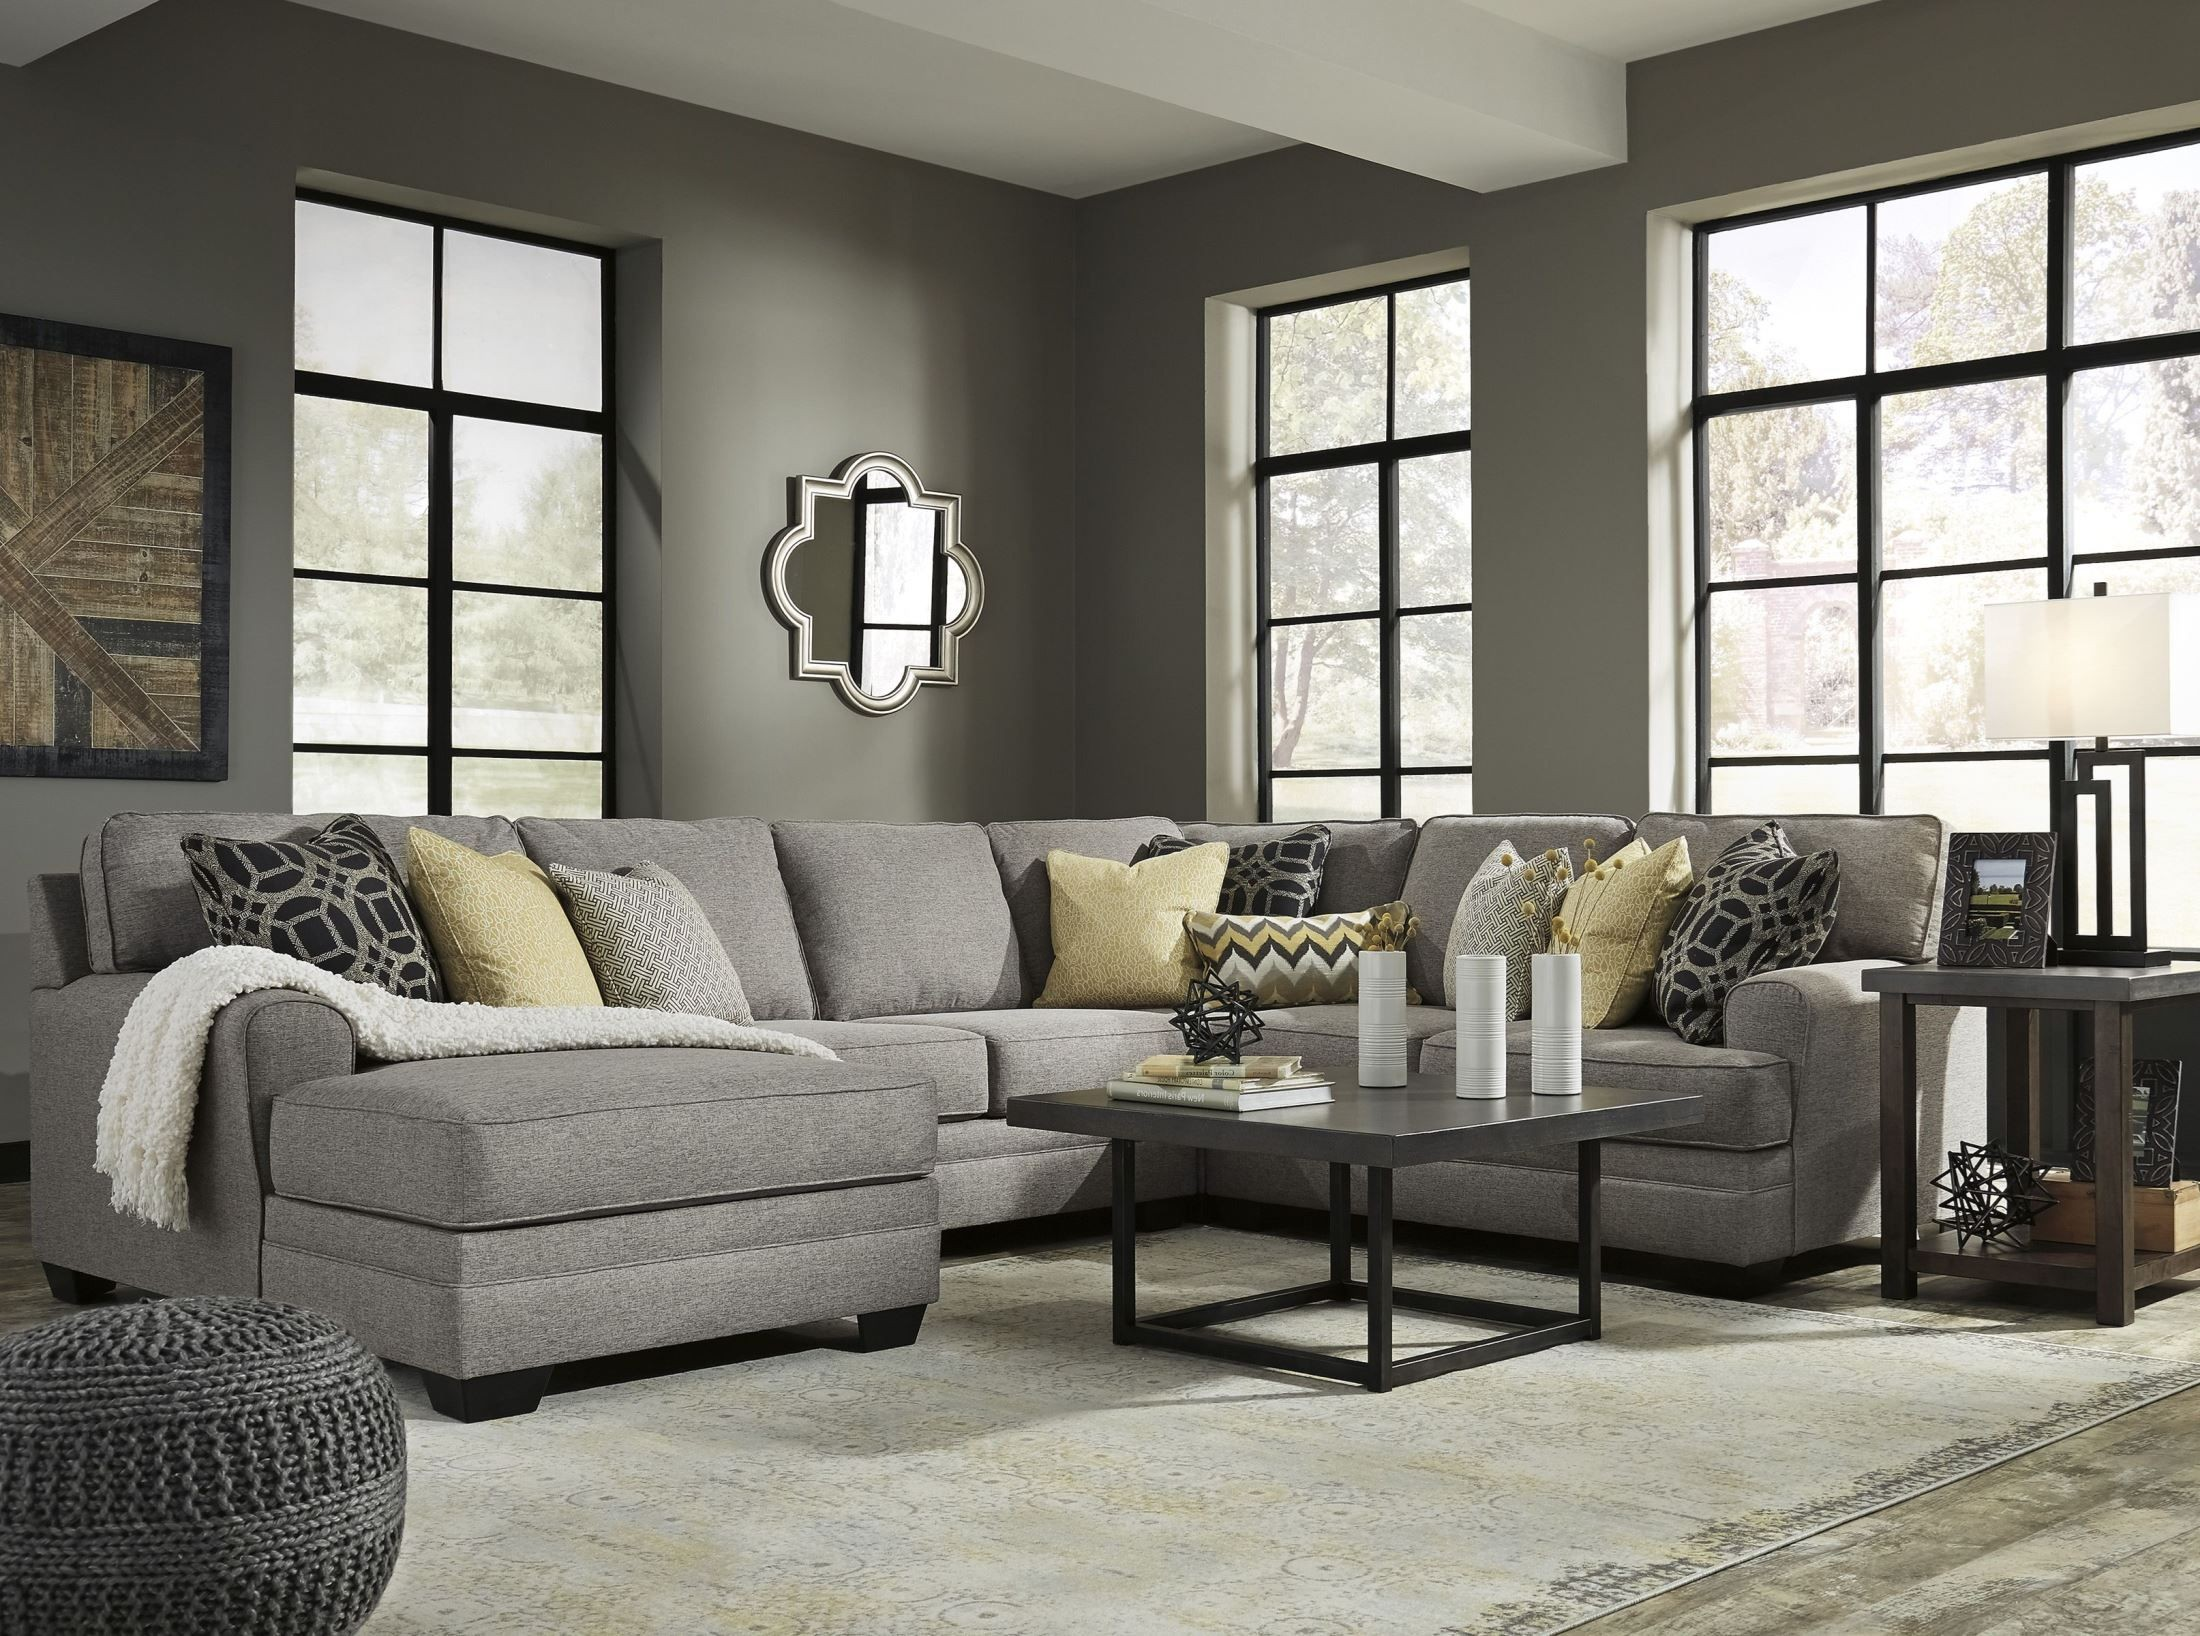 Cresson Pewter Laf Chaise Sectional 54907 Sec2 Ashley